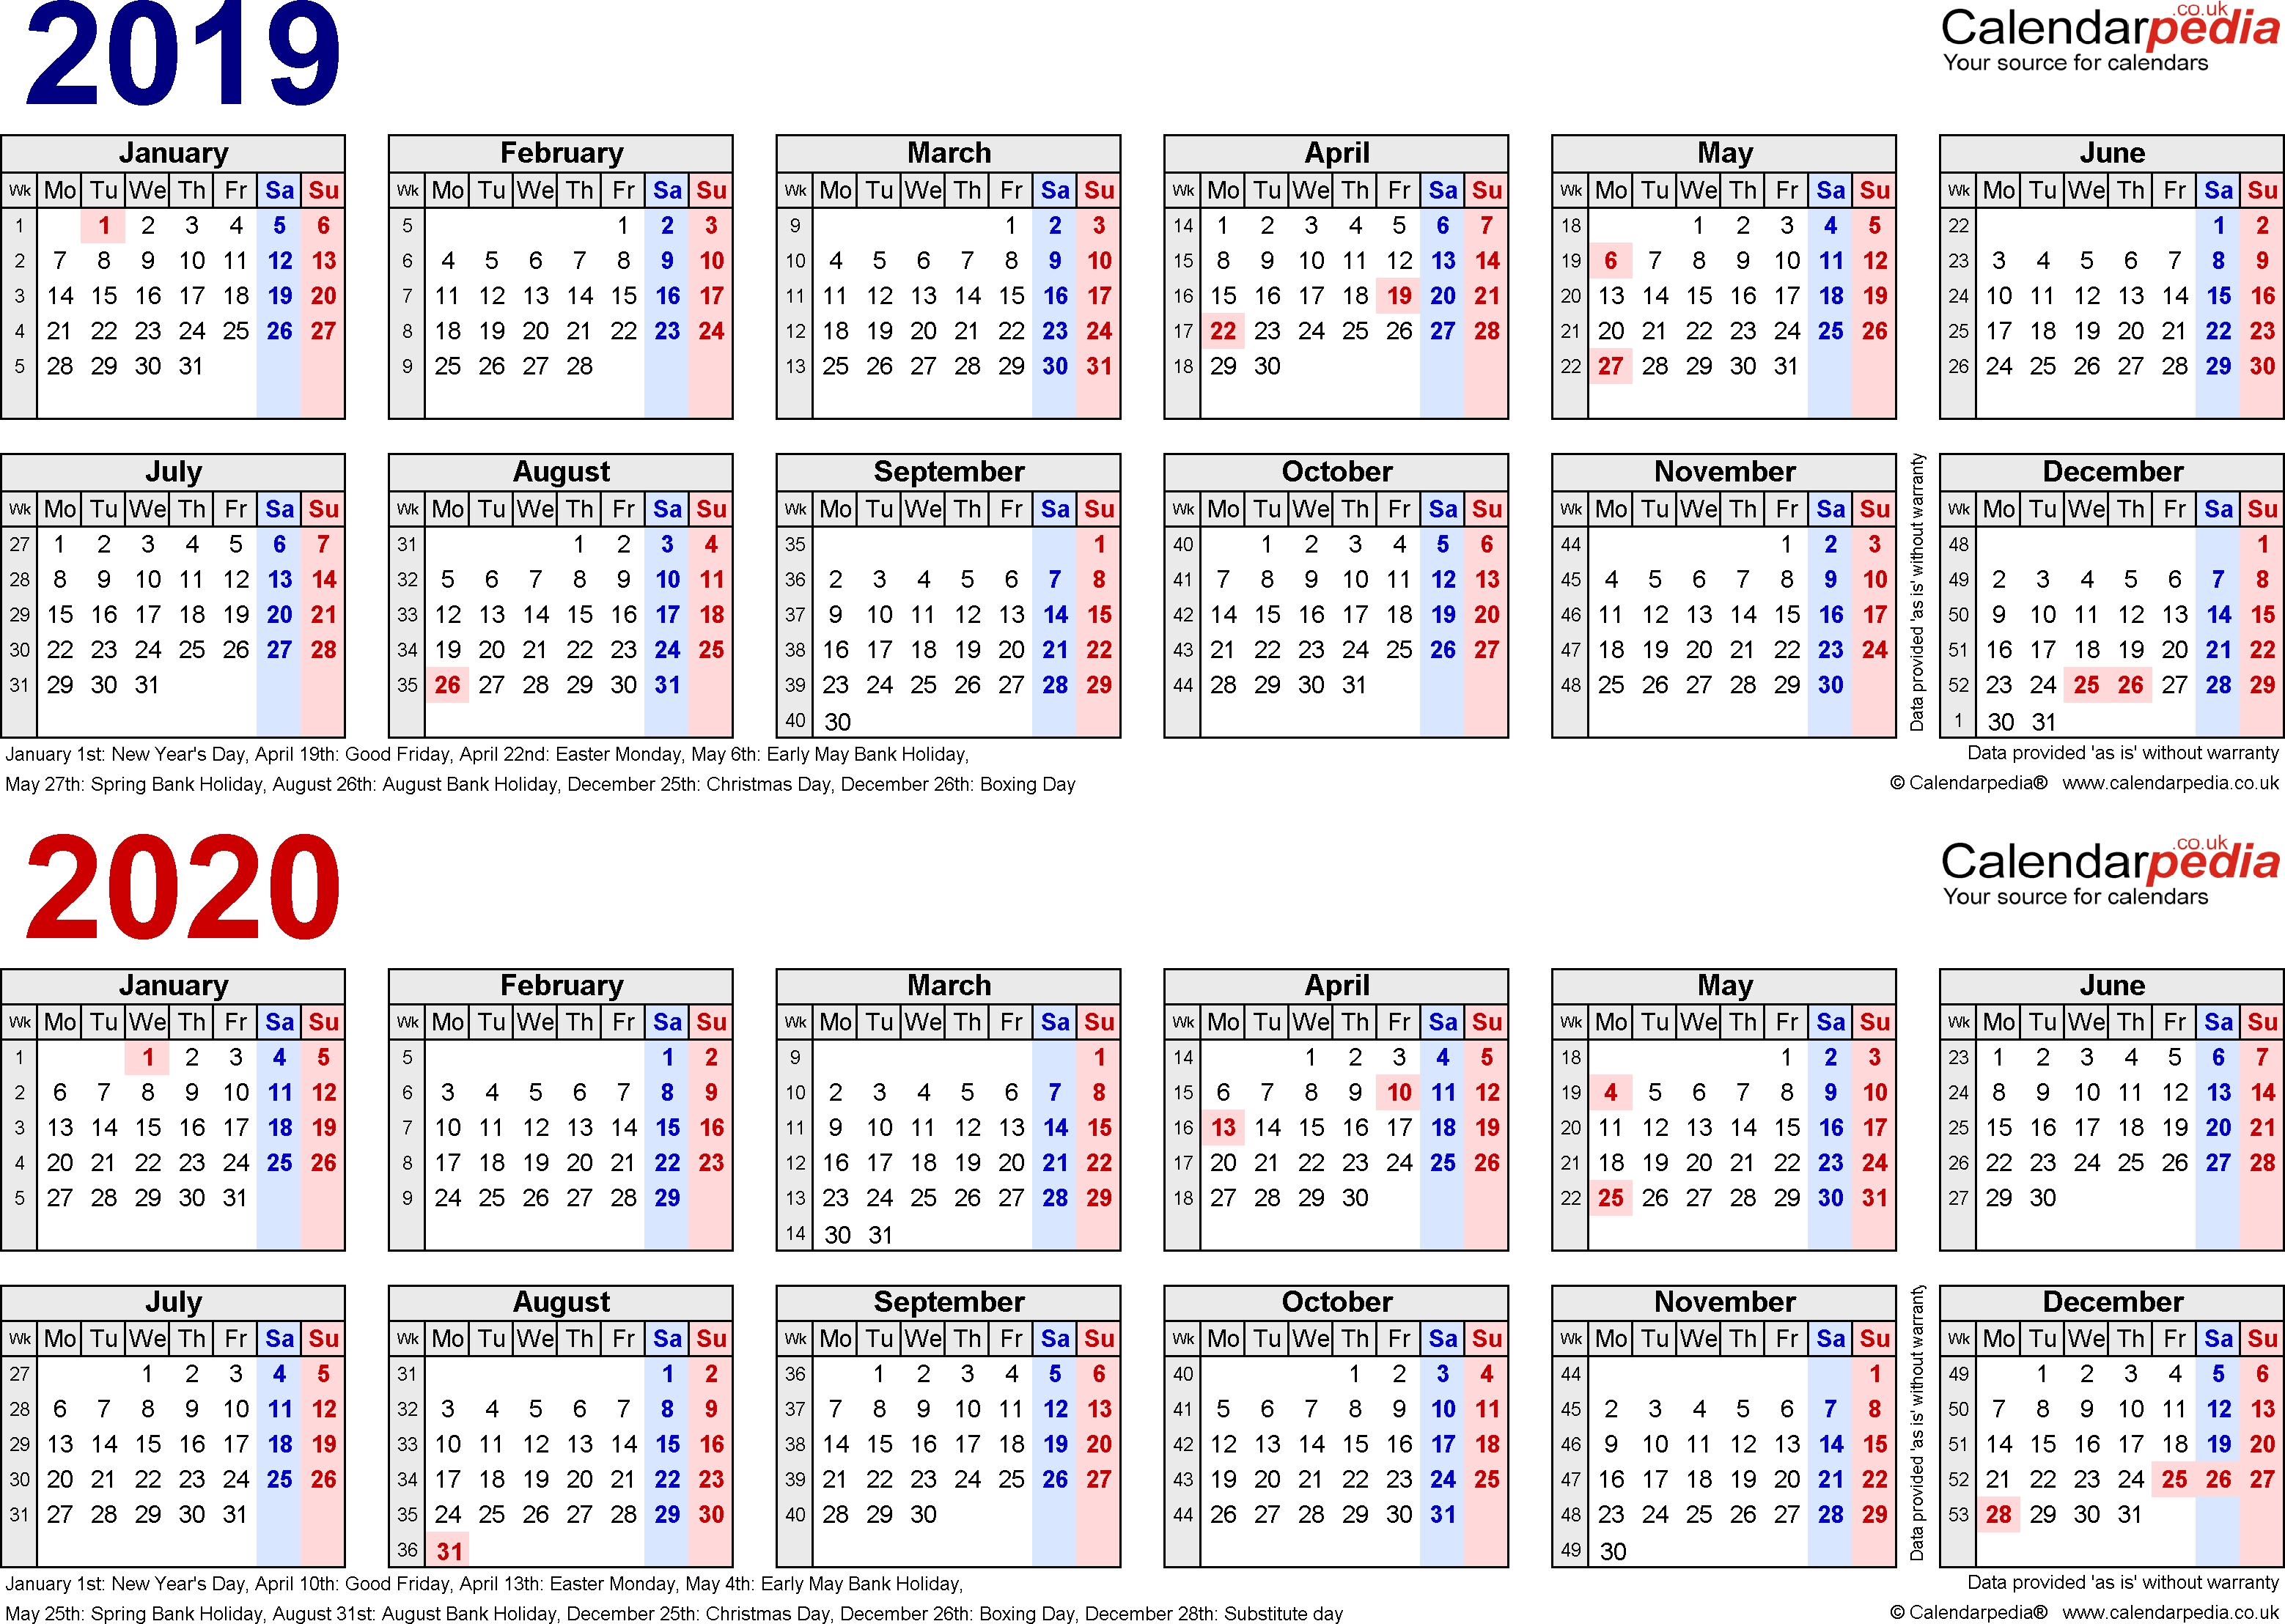 Two Year Calendars For 2019 & 2020 (Uk) For Word Calendar 2019 To 2020